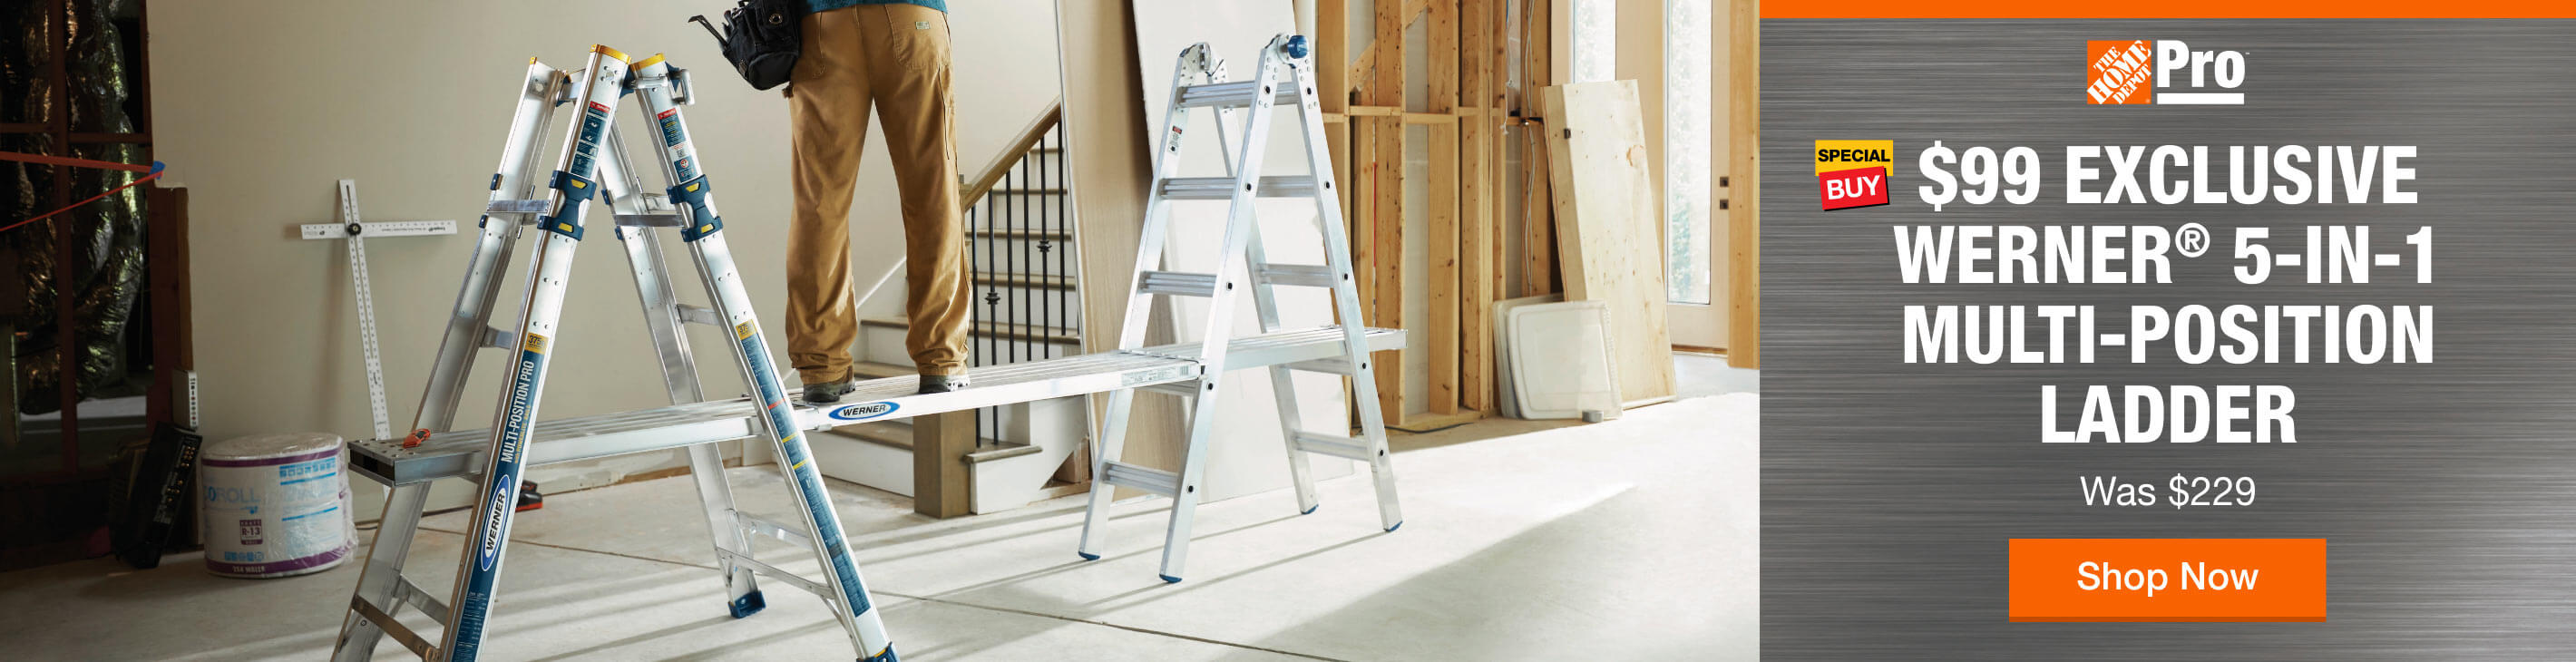 Pro using Werner 5-in-1 multi-position ladder as a scaffold